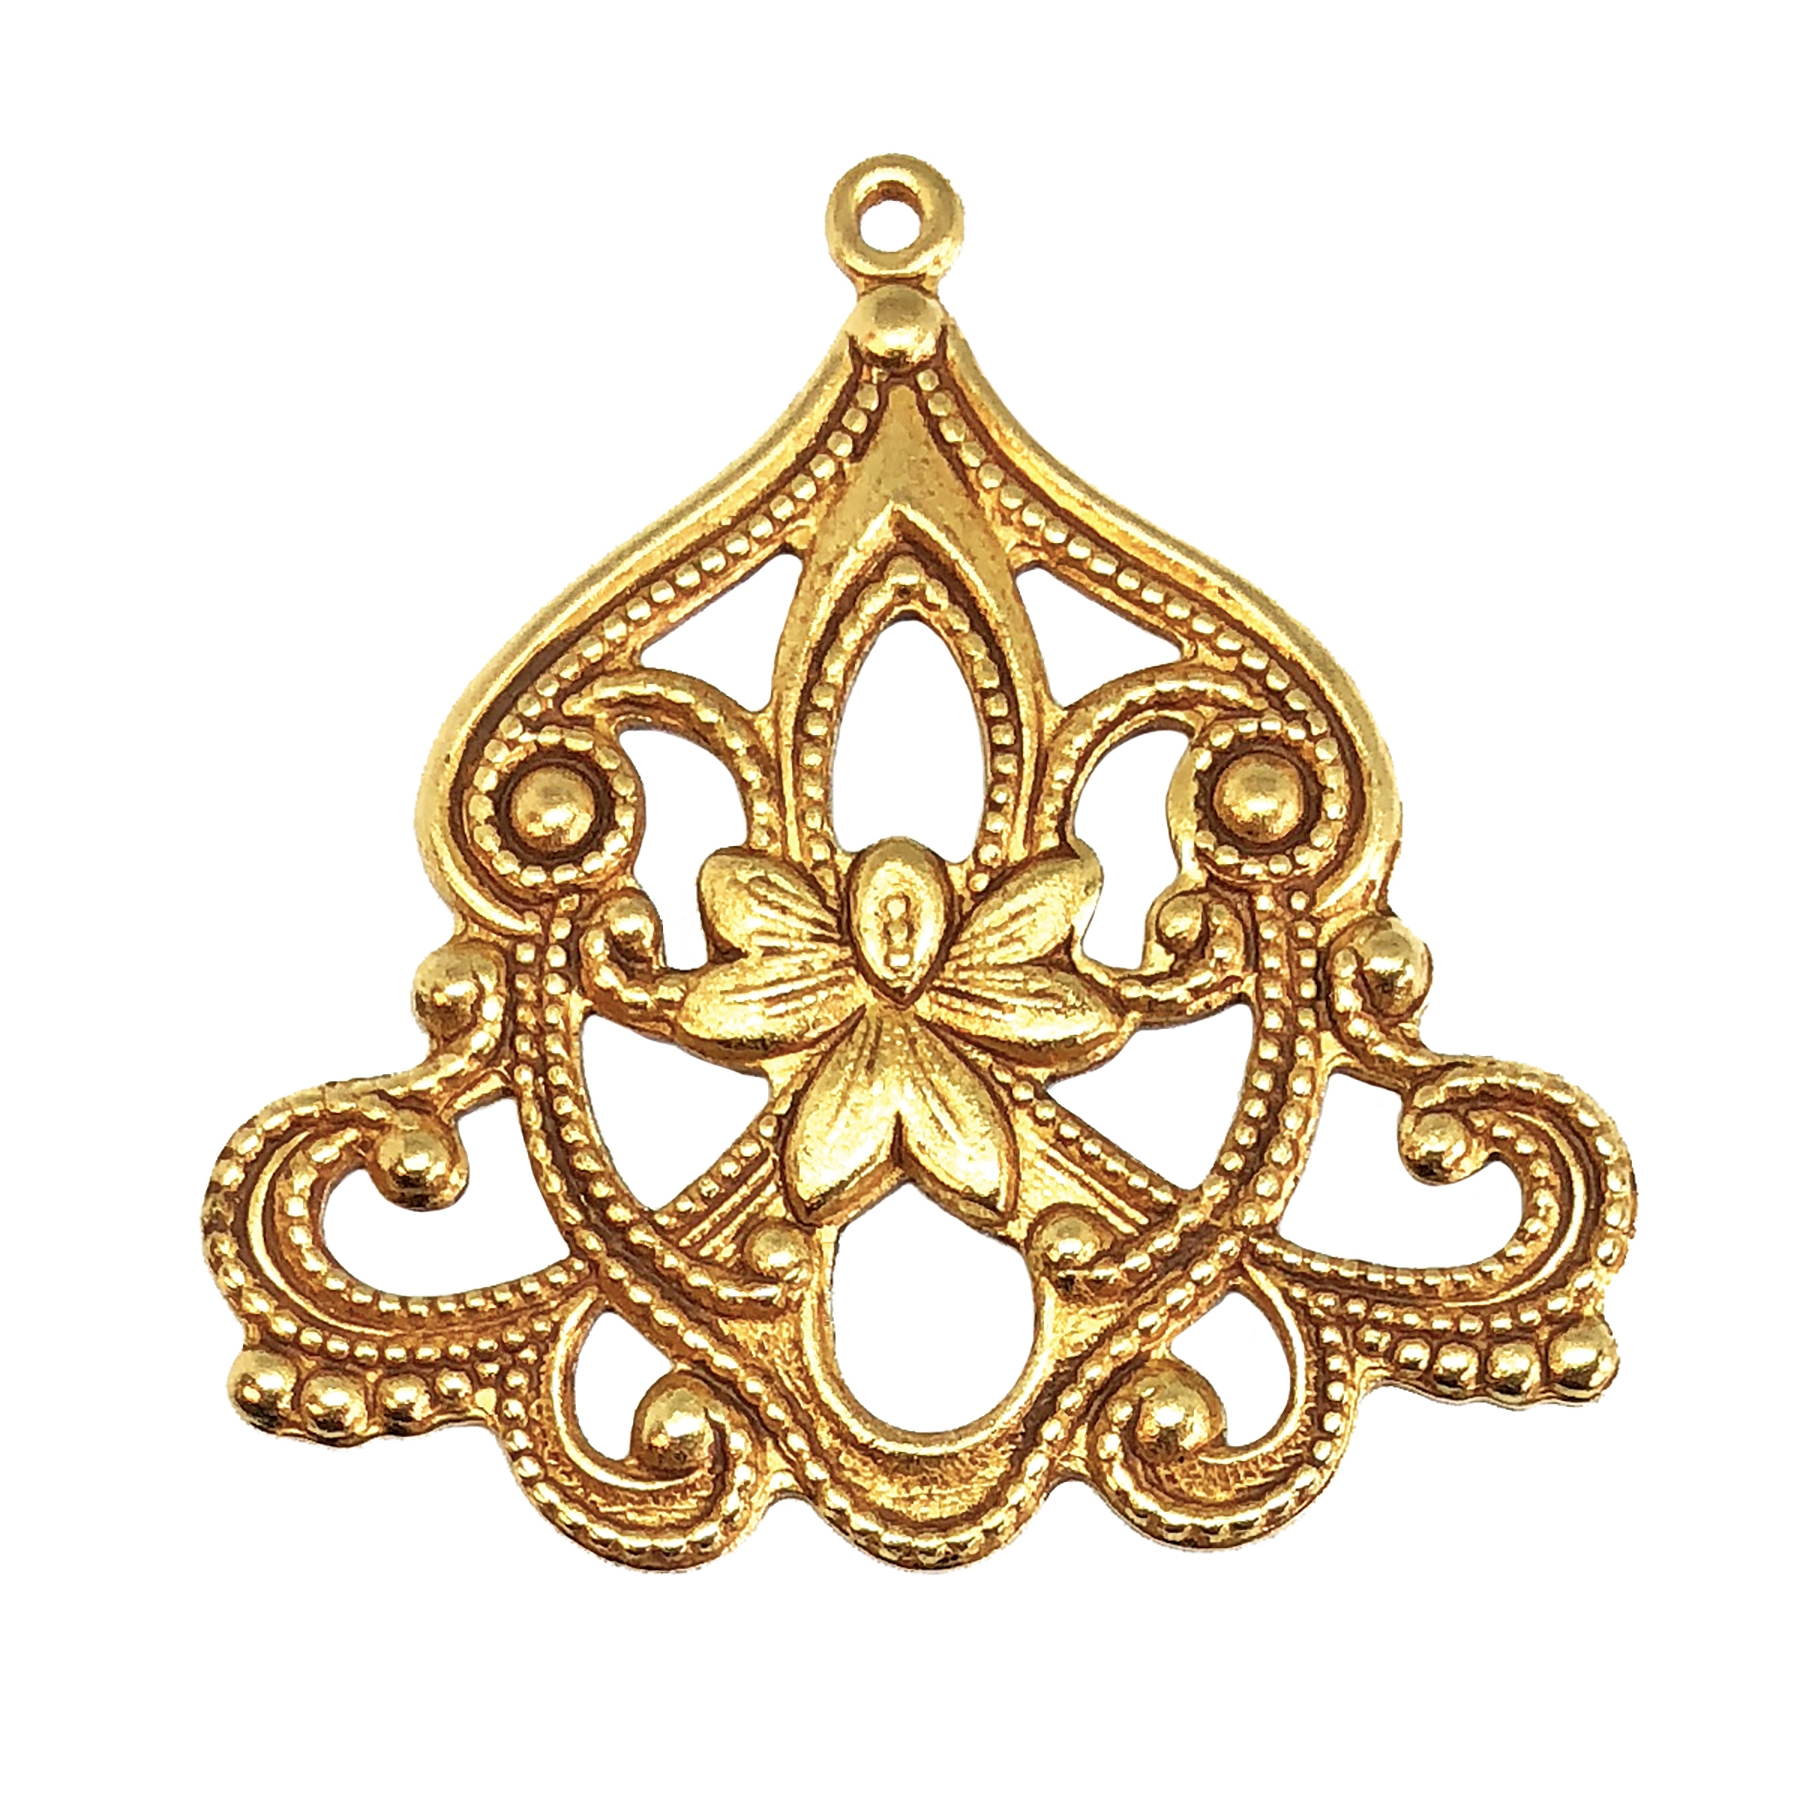 brass floral pendant, classic gold, 05774, vintage jewelry supplies, jewelry making supplies, nickel free, US made, Bsue Boutiques, filigree pendants, antique gold, Victorian style pendant